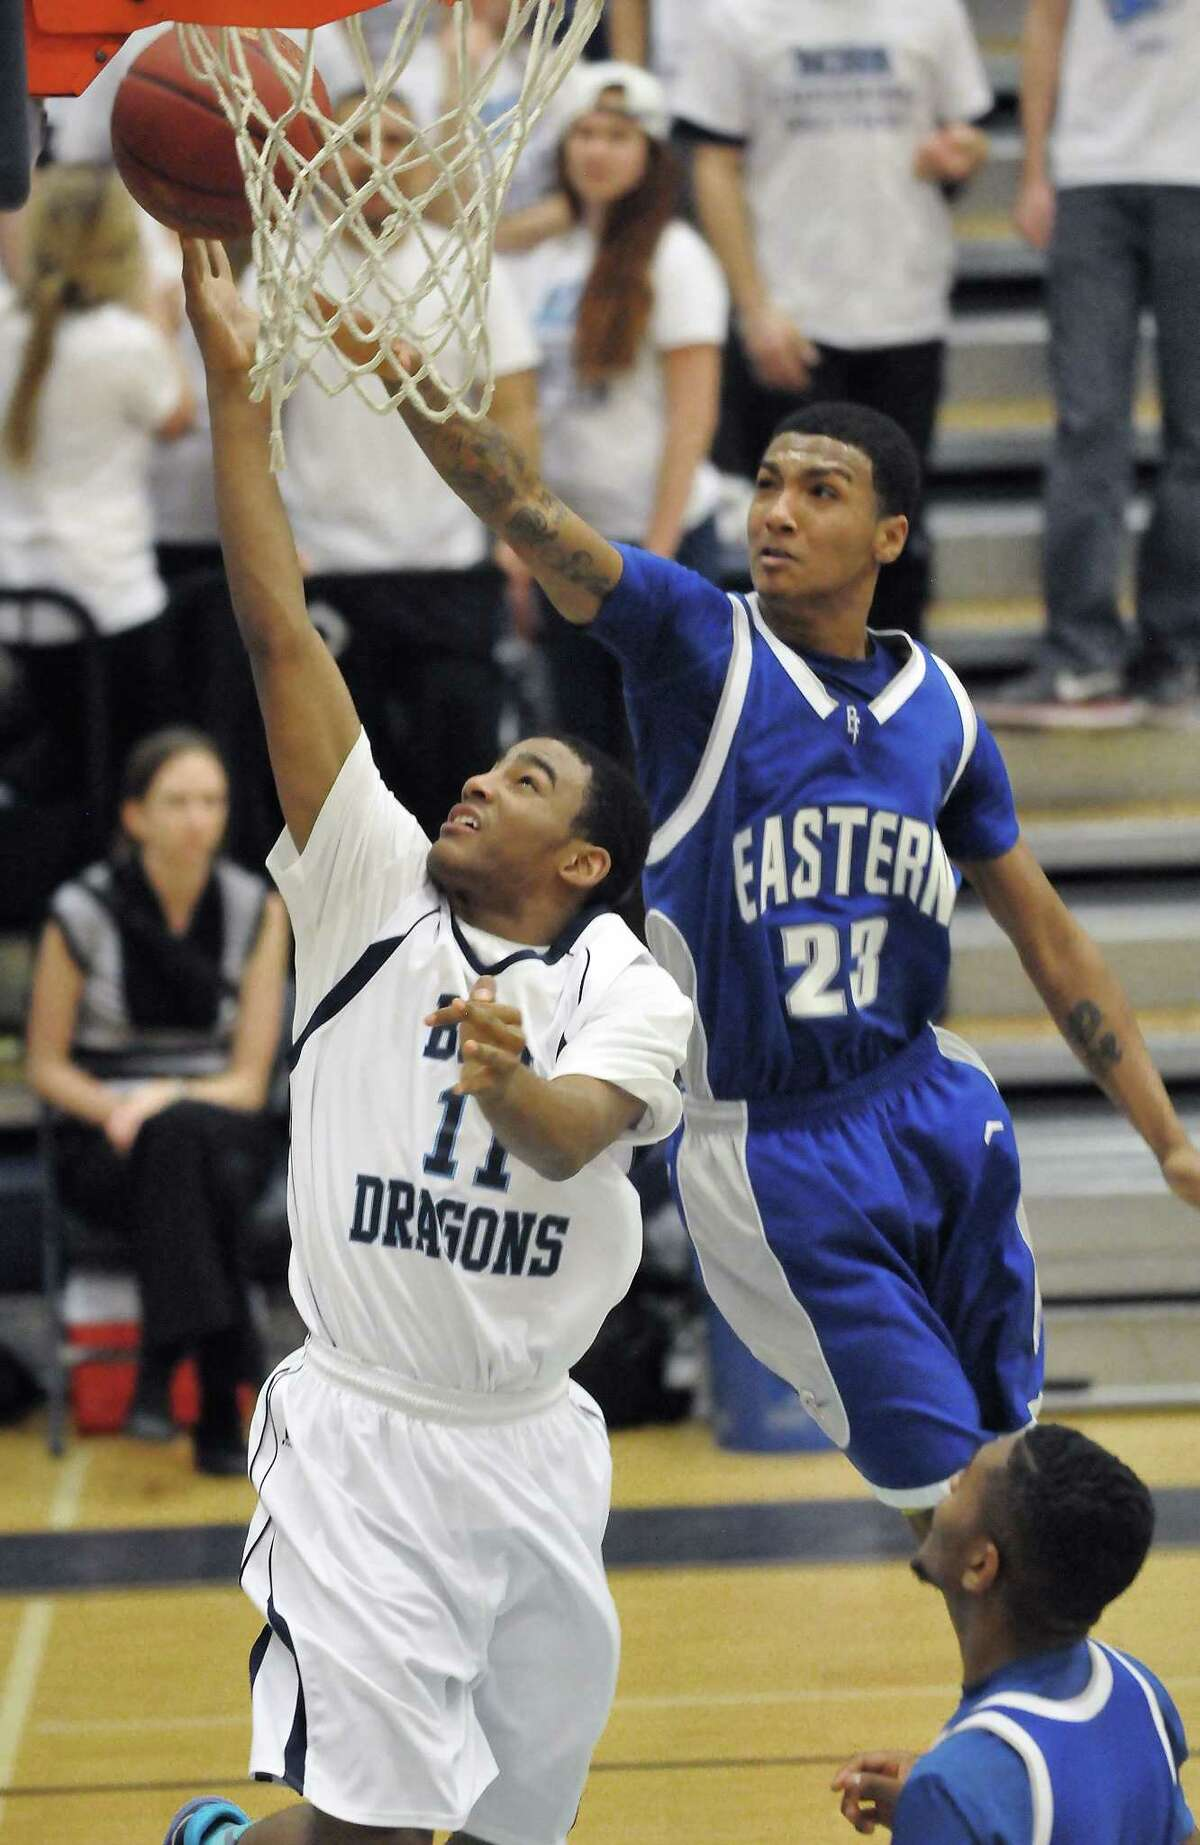 Middletown sophomore point guard Makai Hunter elevates for two as Bristol Eastern's Daron McKoy defends Friday night at LaBella-Sullivan Gymnasium at MHS. The Blue Dragons defeated Bristol Eastern, 60-41.